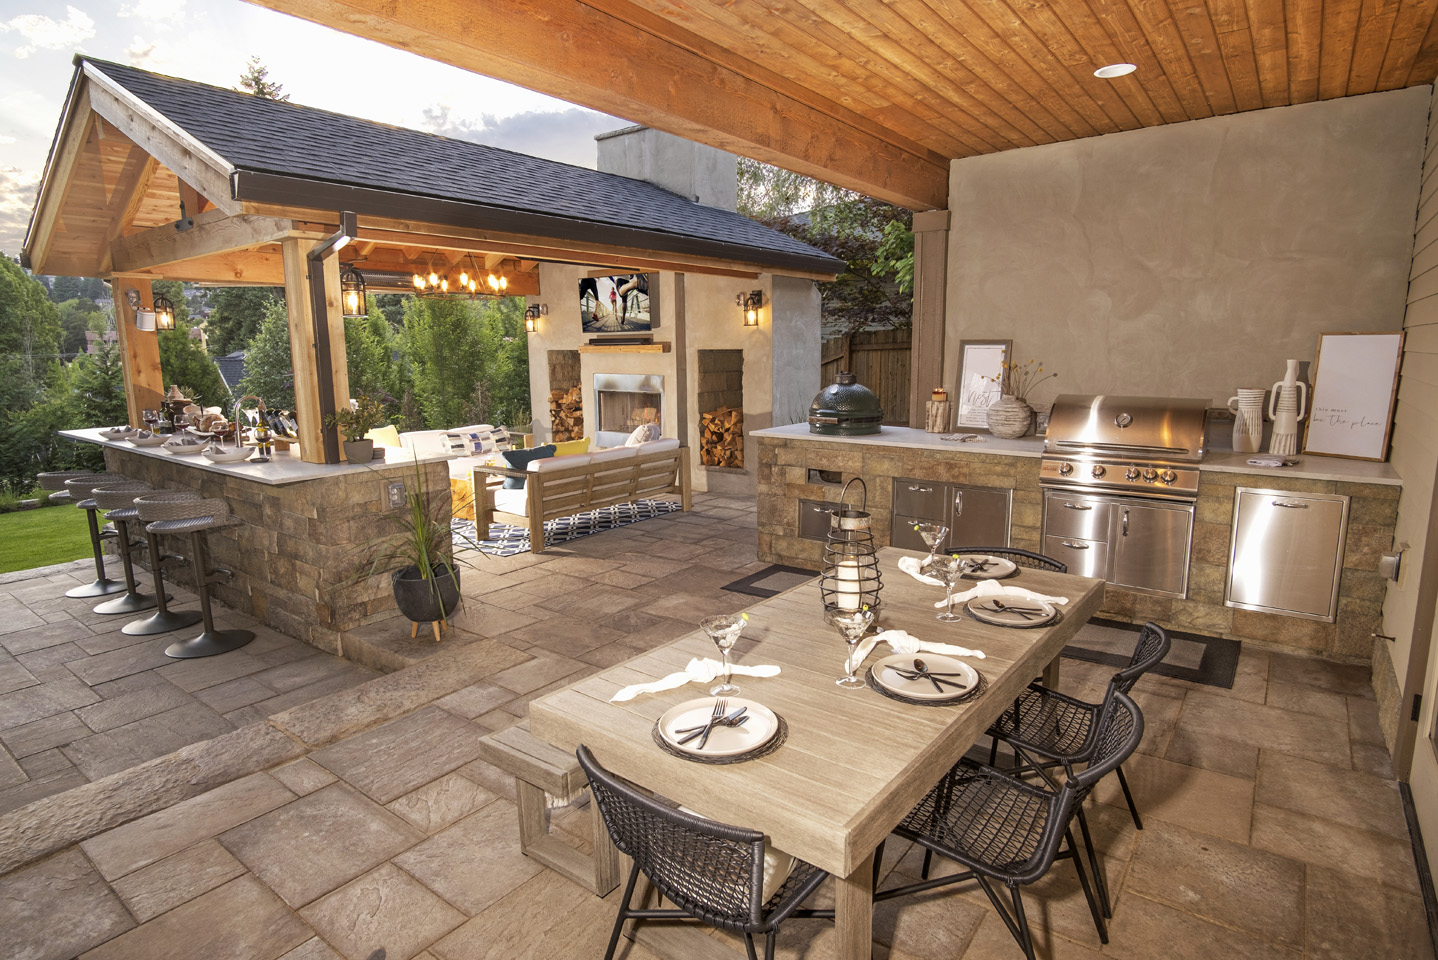 Outdoor Patio Ideas - Paradise Restored Landscaping